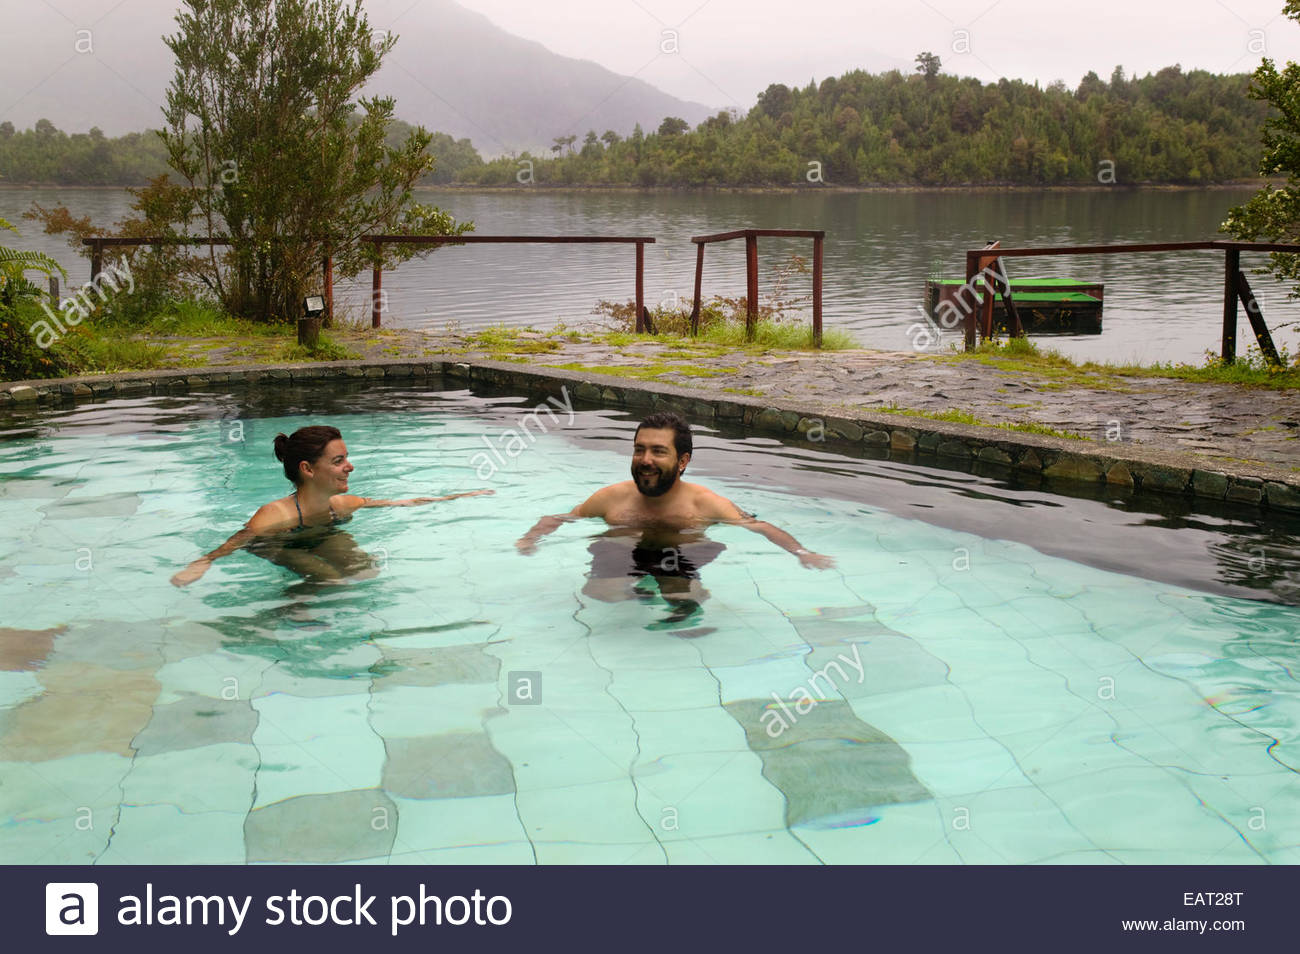 Relaxing in a natural hot spring, in Puyuhuapi, Patagonia, Chile. - Stock Image